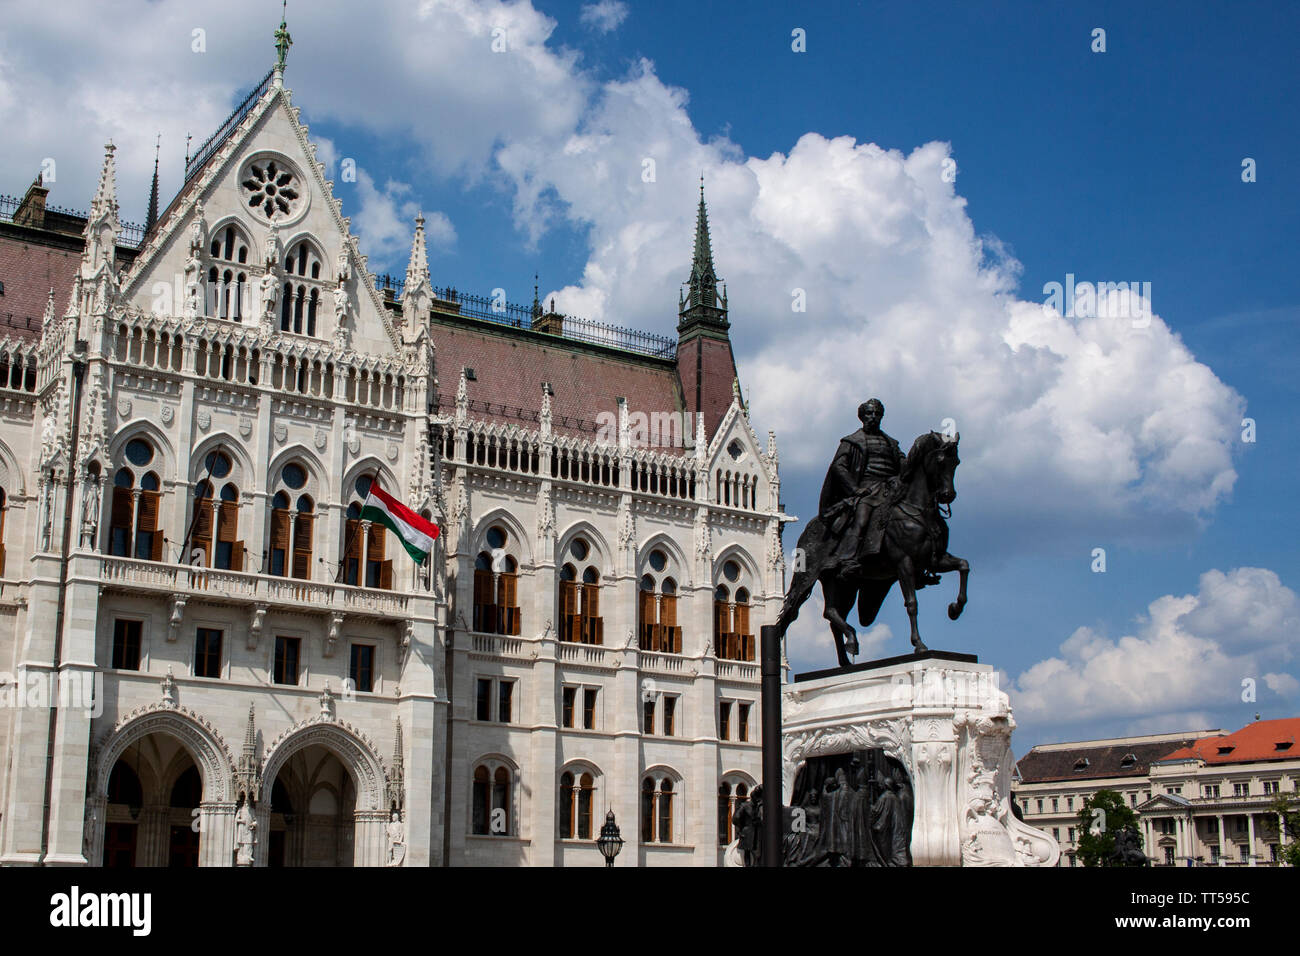 A view of the Hungarian Parliament building. Lewis Mitchell. - Stock Image